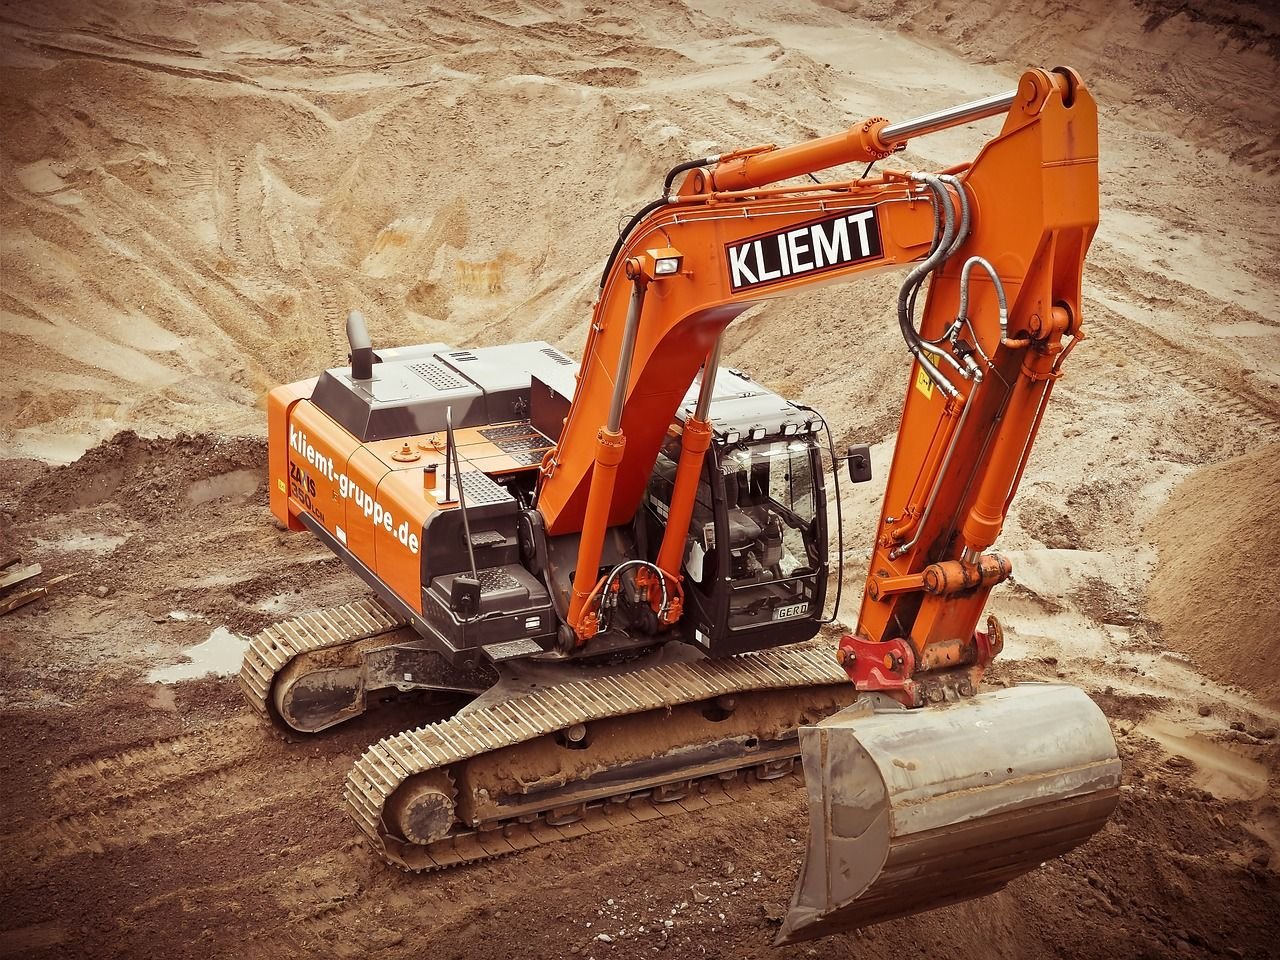 Factors to Consider While Hiring Construction Equipment